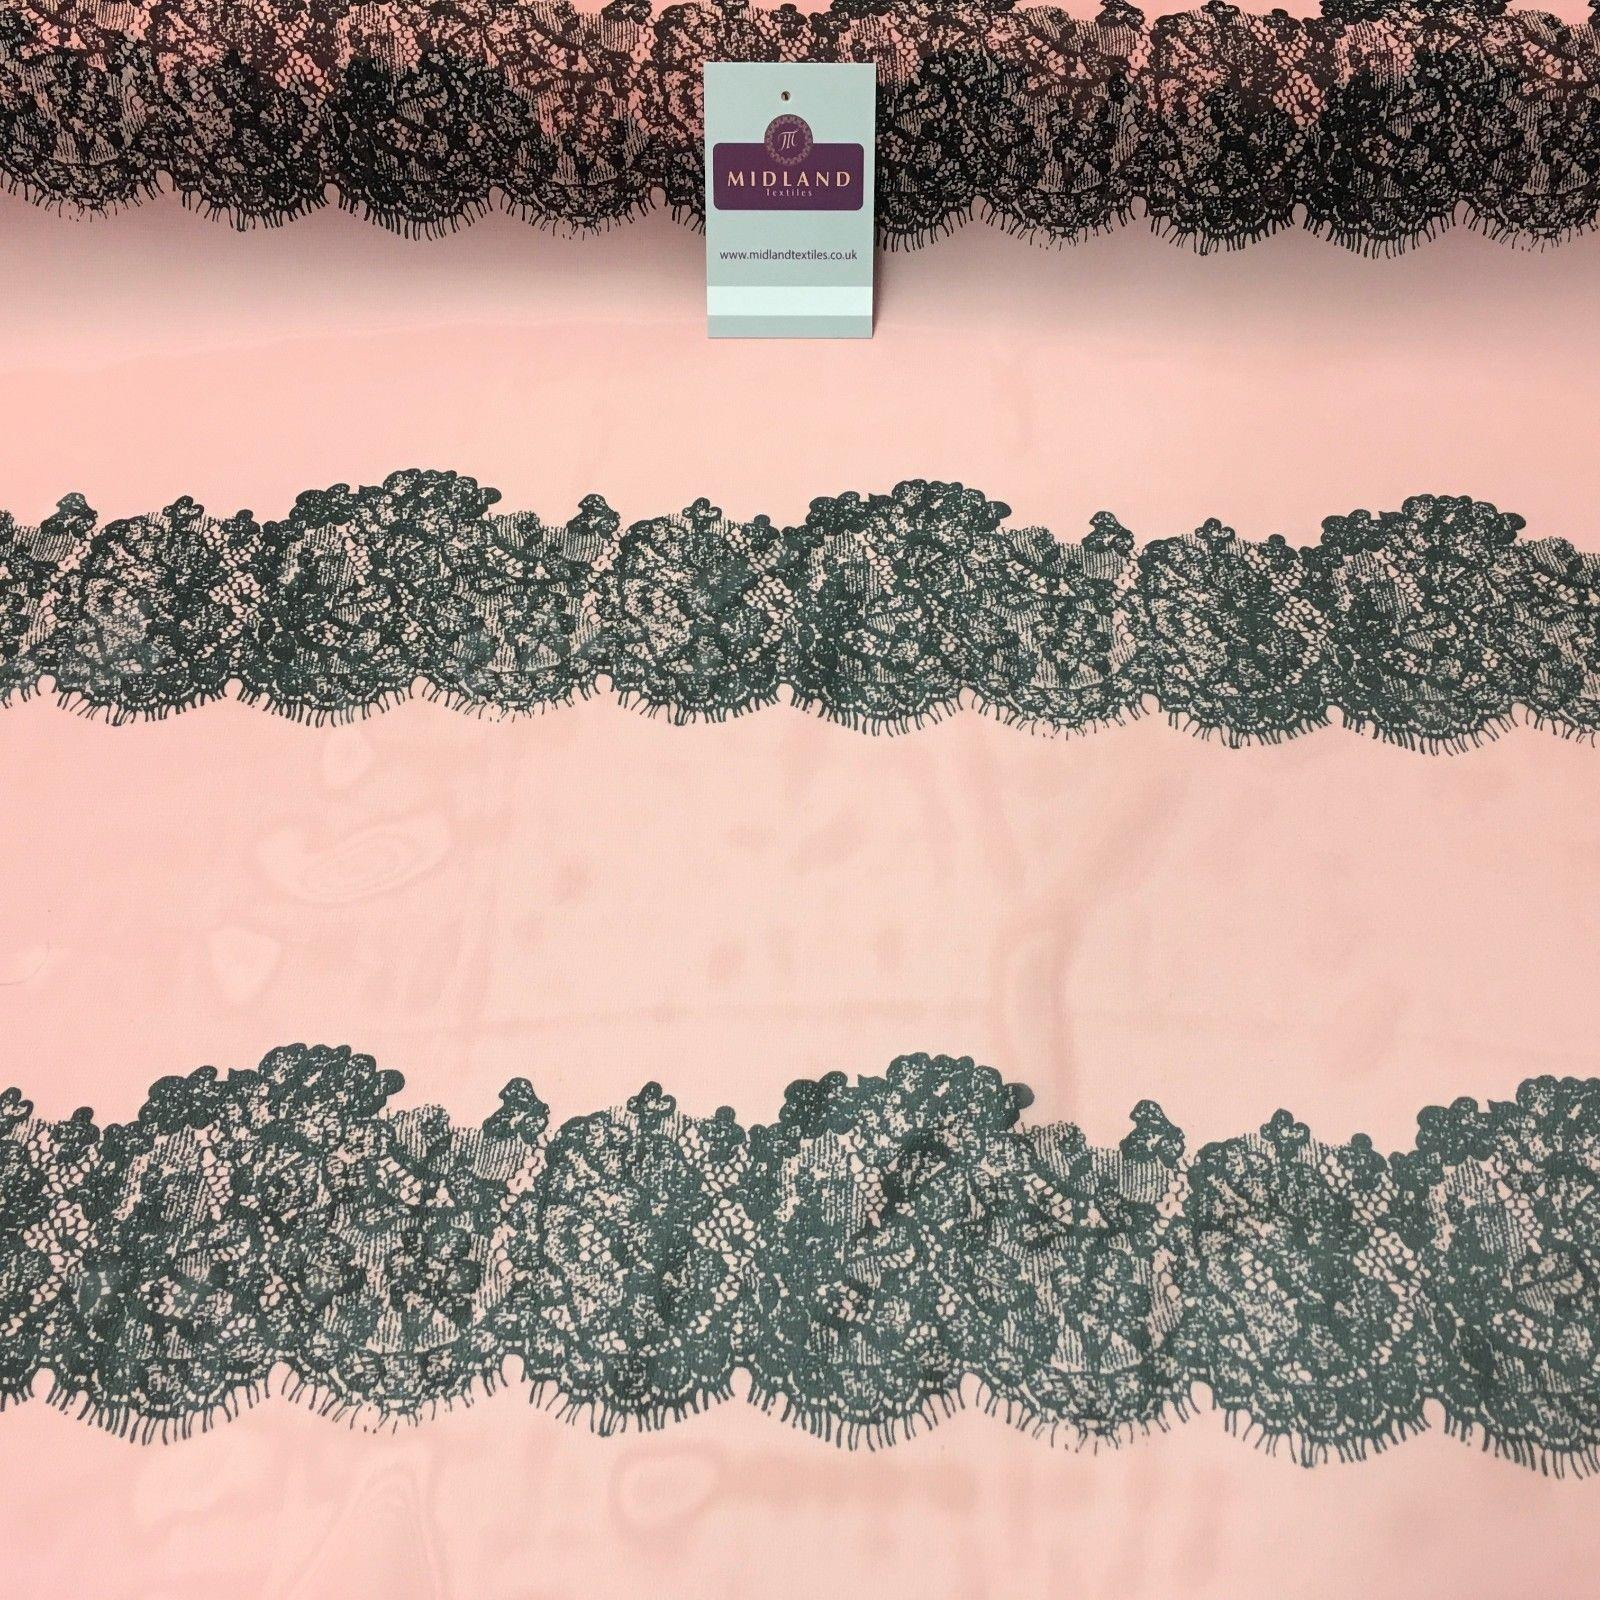 "Peach pink lace effect printed chiffon high street Fabric 58"" Wide M401-56 Mtex"